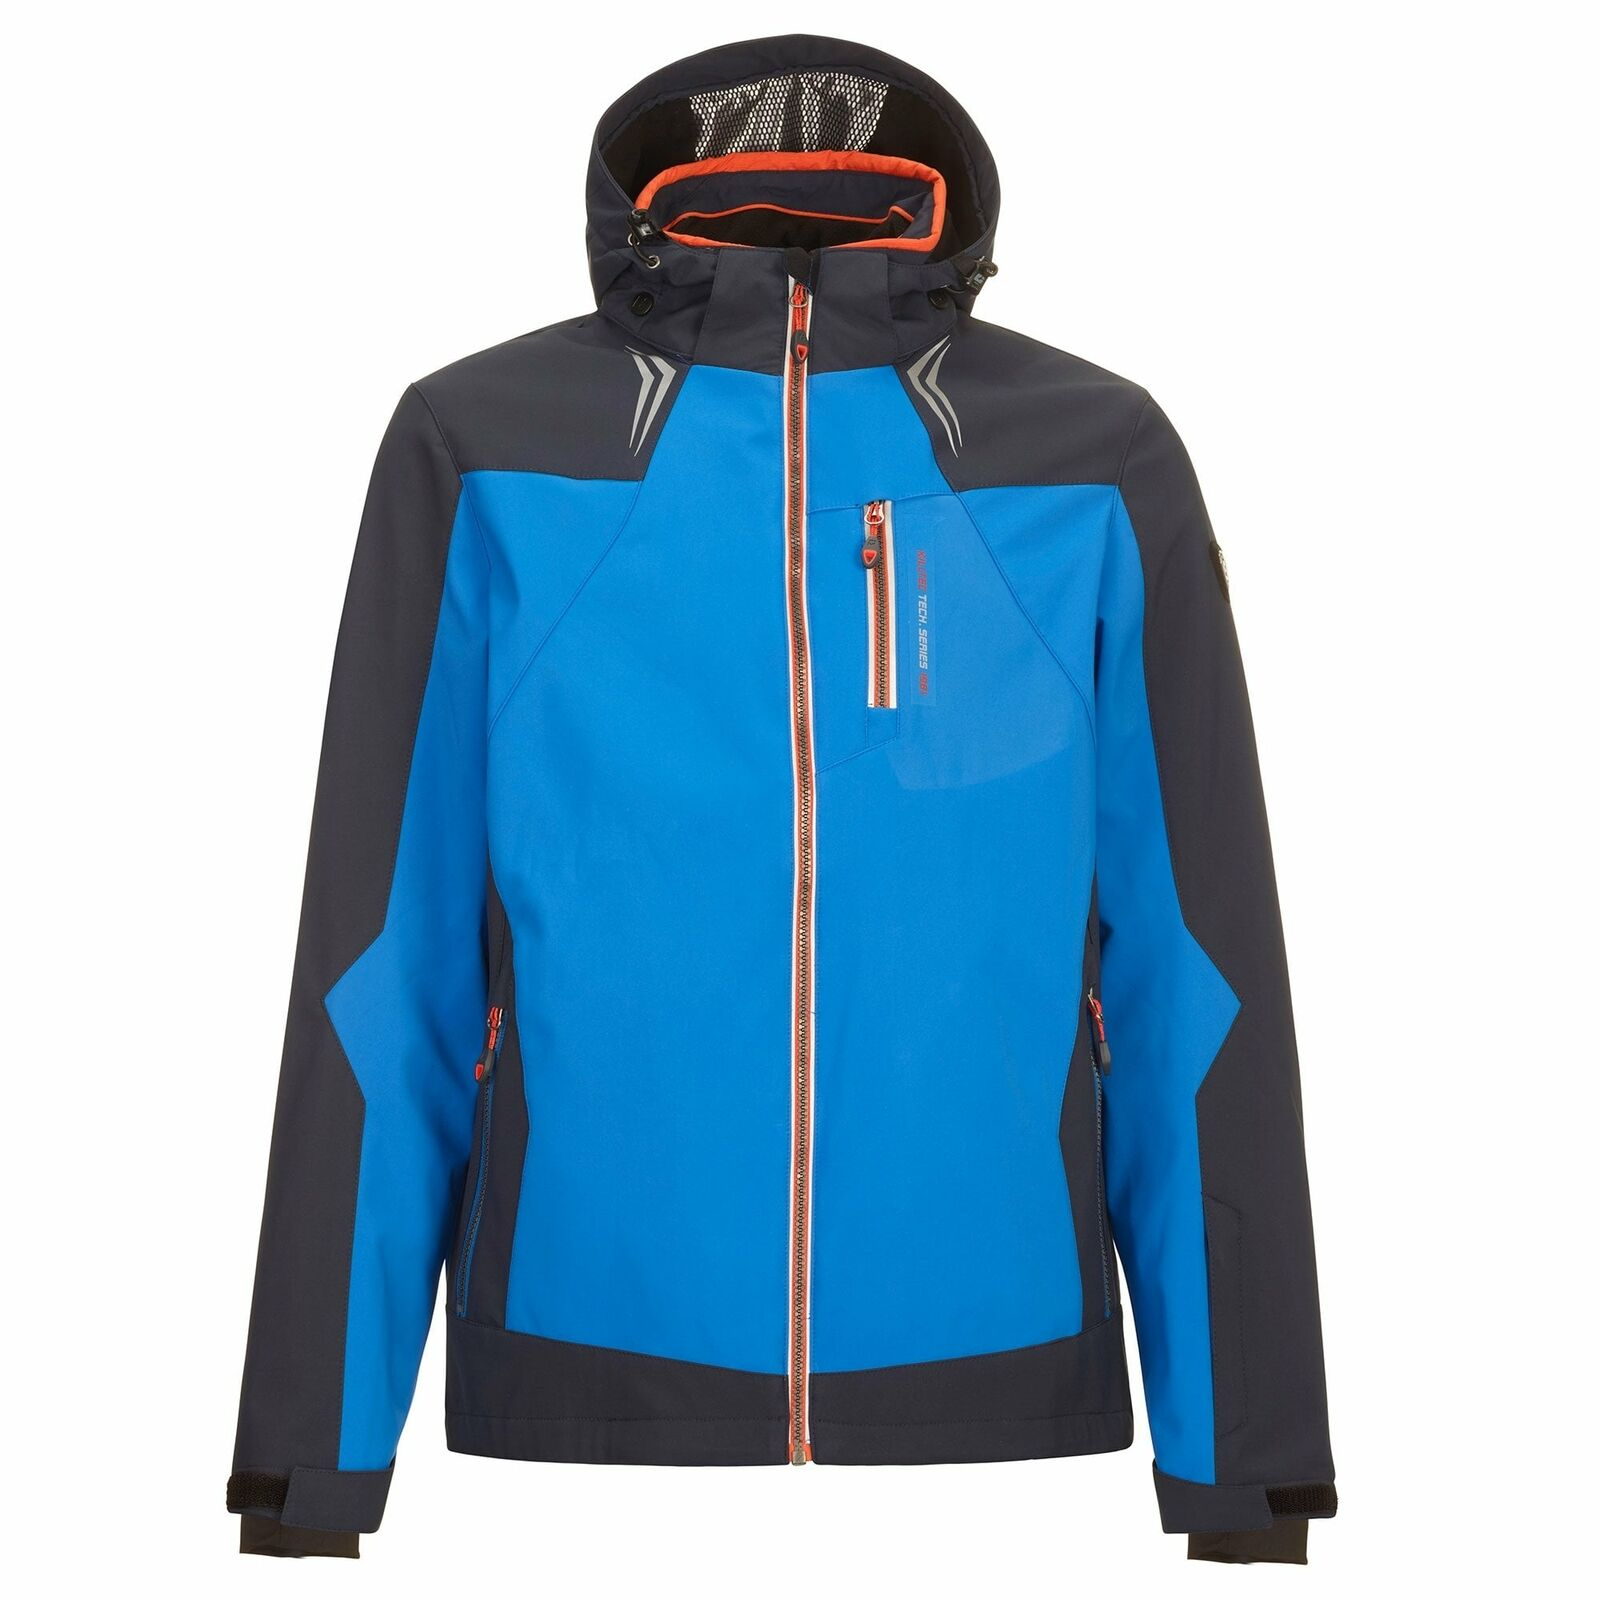 Killtec Kolian Softshell Ski Jacket - Blau Navy